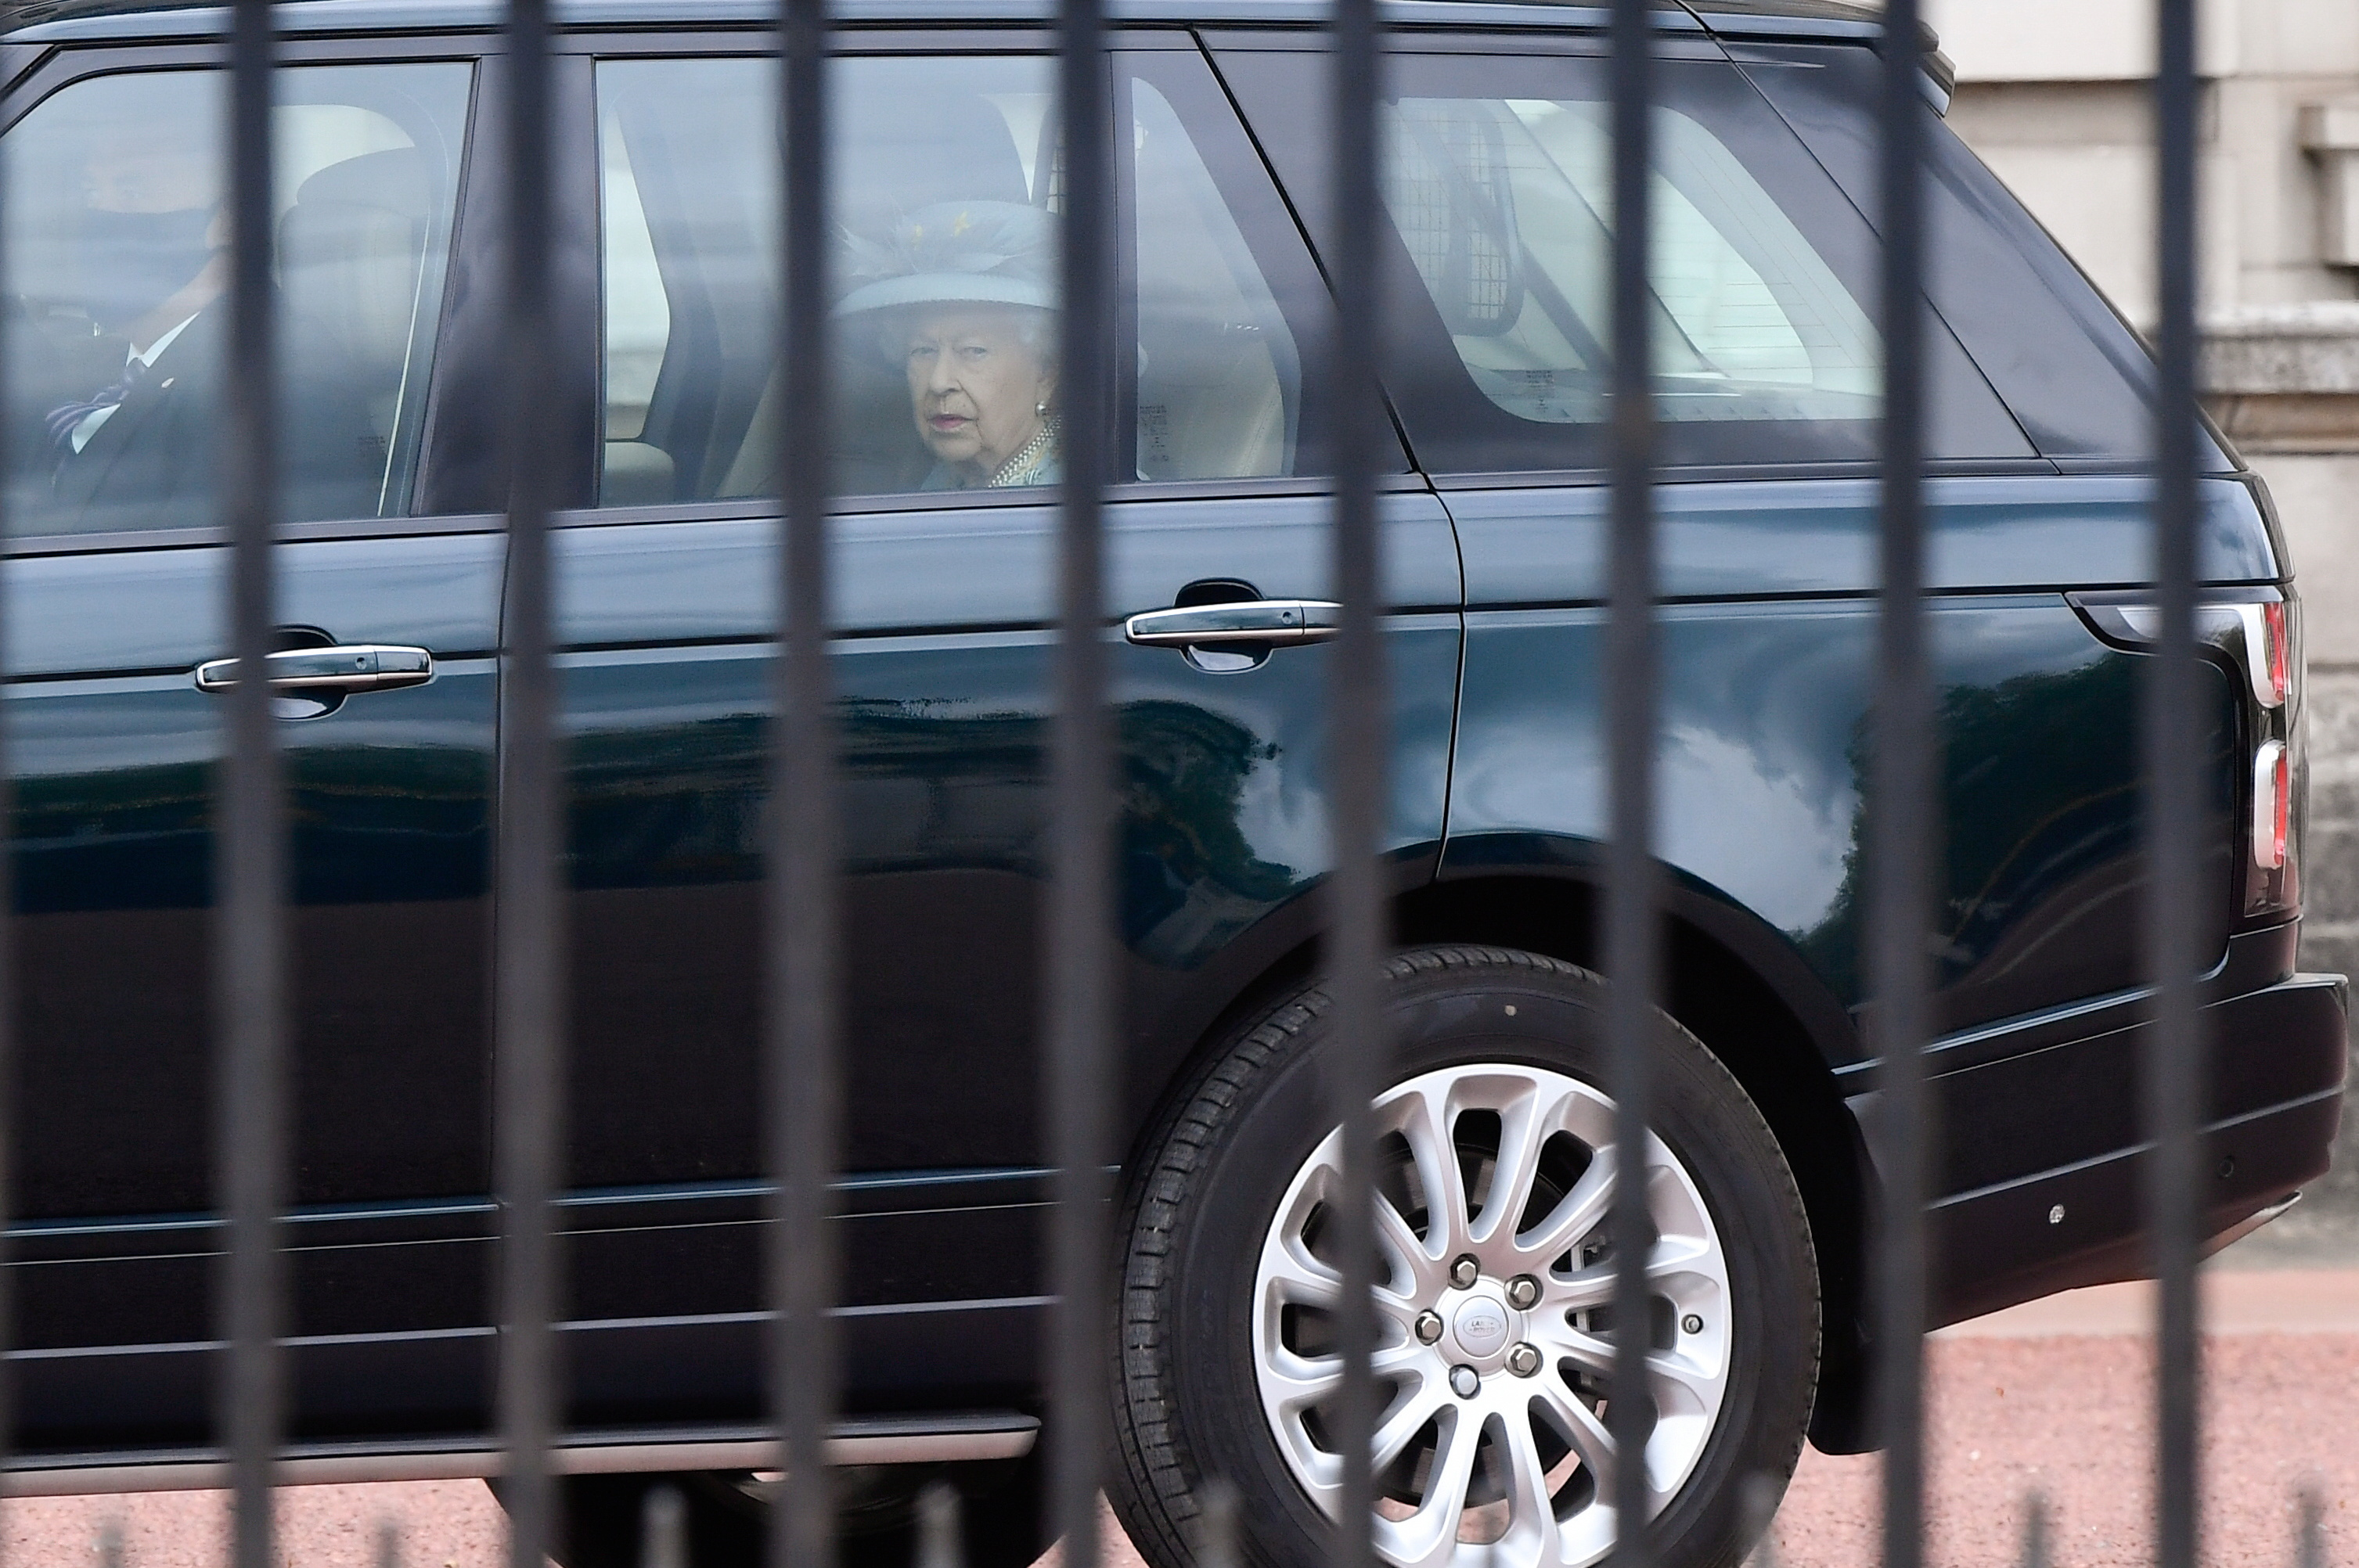 Britain's Queen Elizabeth leaves Buckingham Palace for the State Opening of Parliament at the Palace of Westminster, where a scaled-back ceremony will take place amid the coronavirus disease (COVID-19) restrictions, in London, Britain, May 11, 2021. REUTERS/Toby Melville